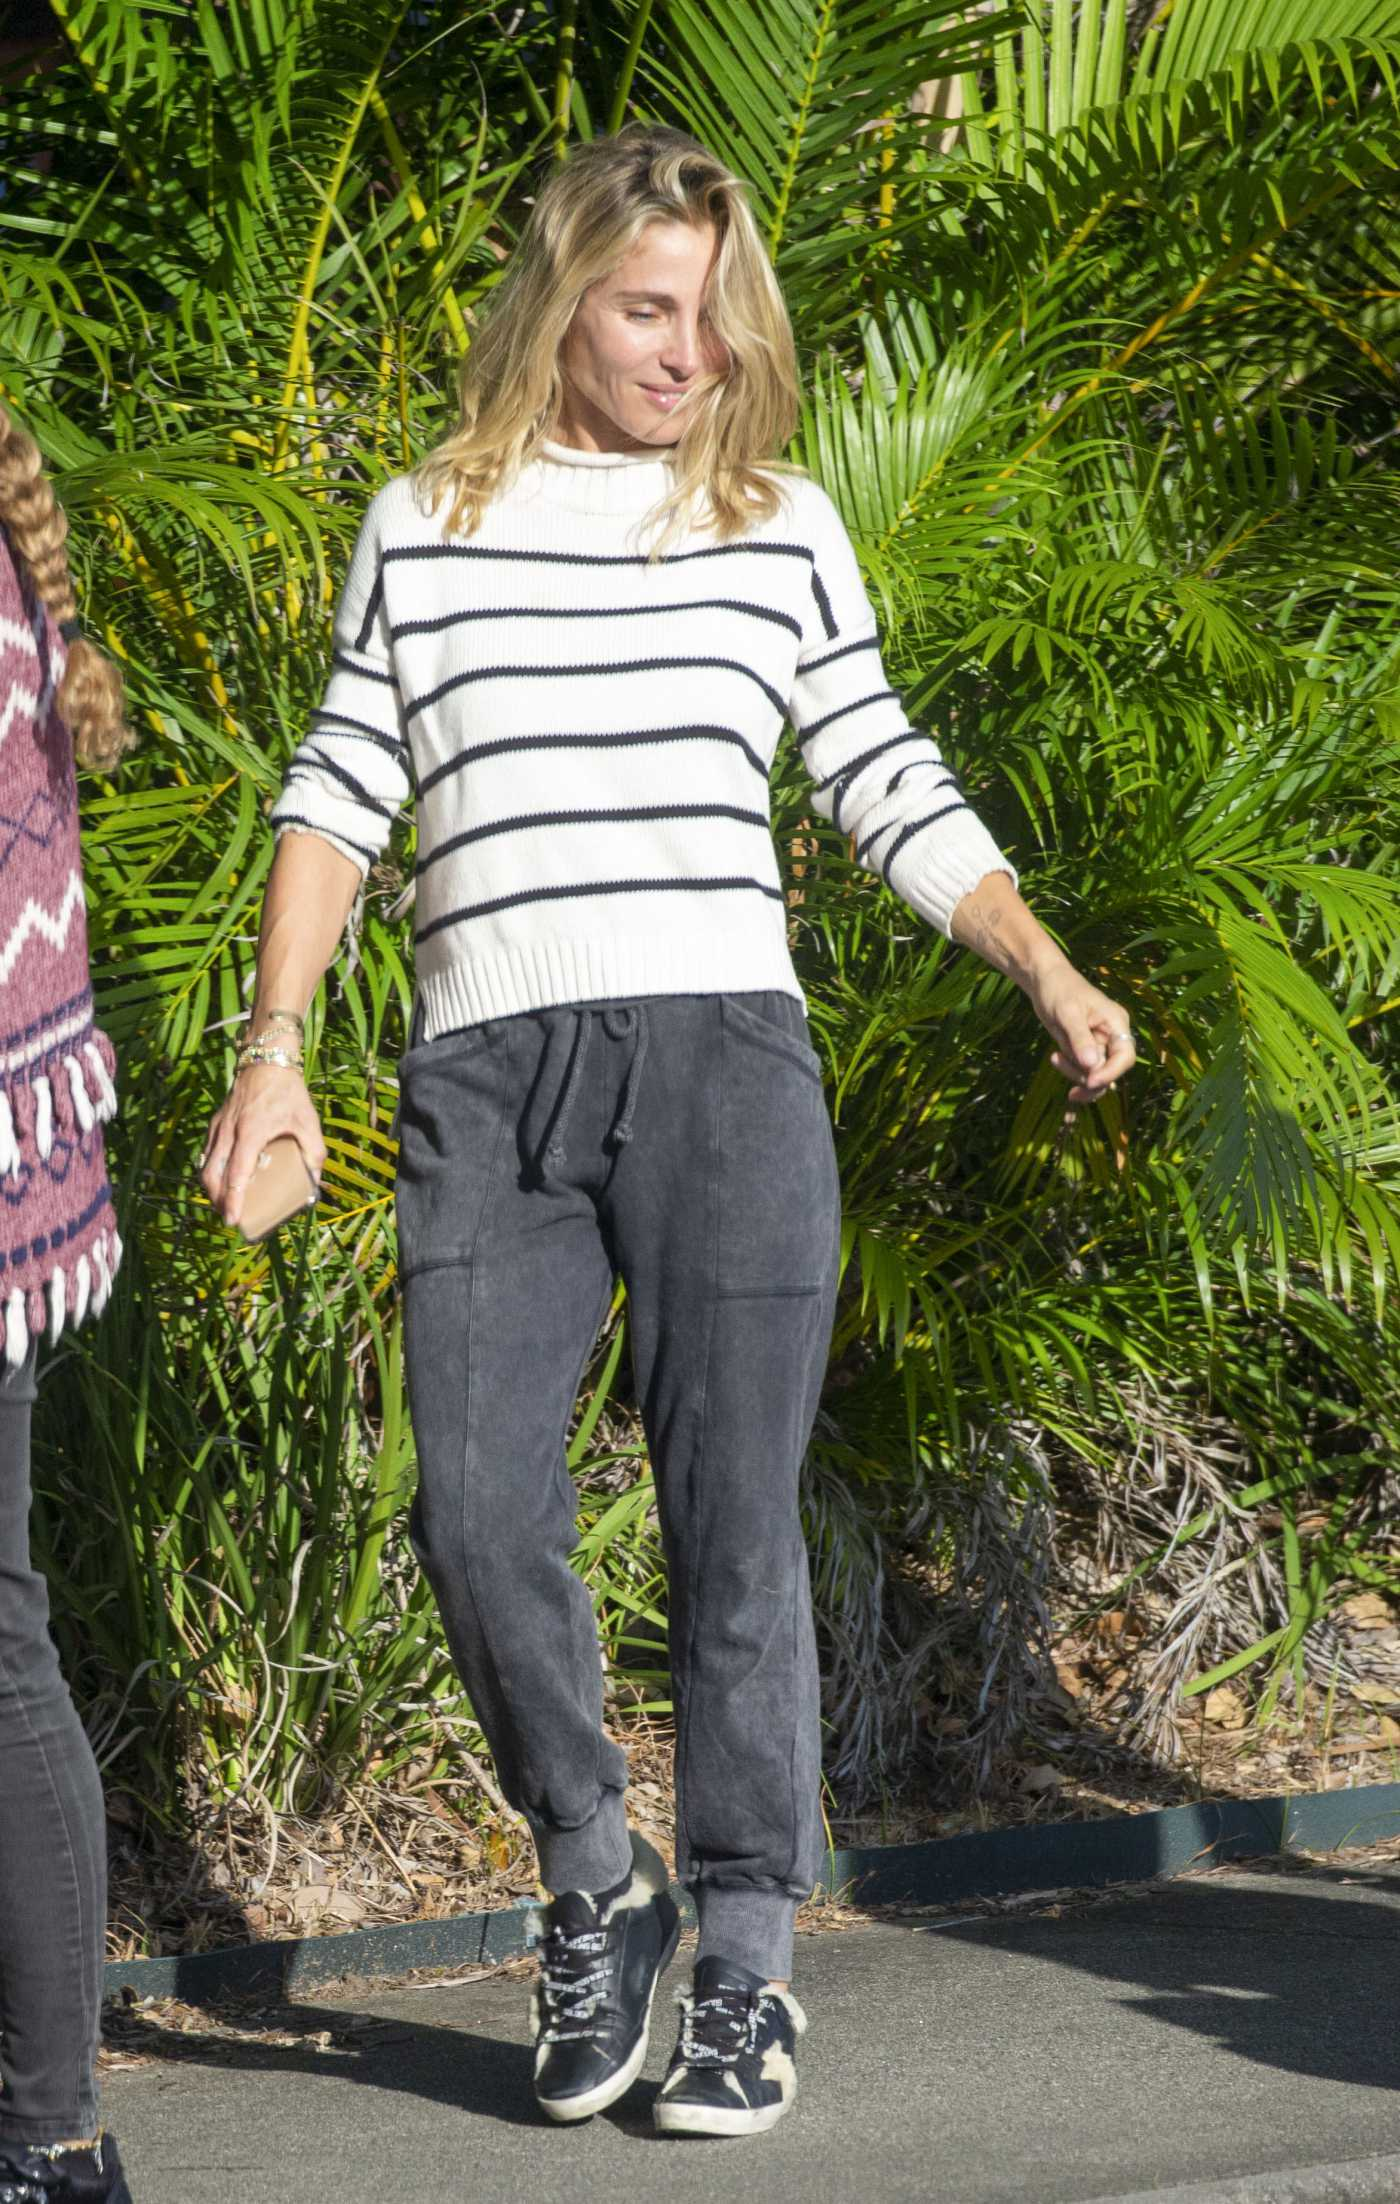 Elsa Pataky in a White Striped Sweater Was Seen Out in Byron Bay 05/18/2020